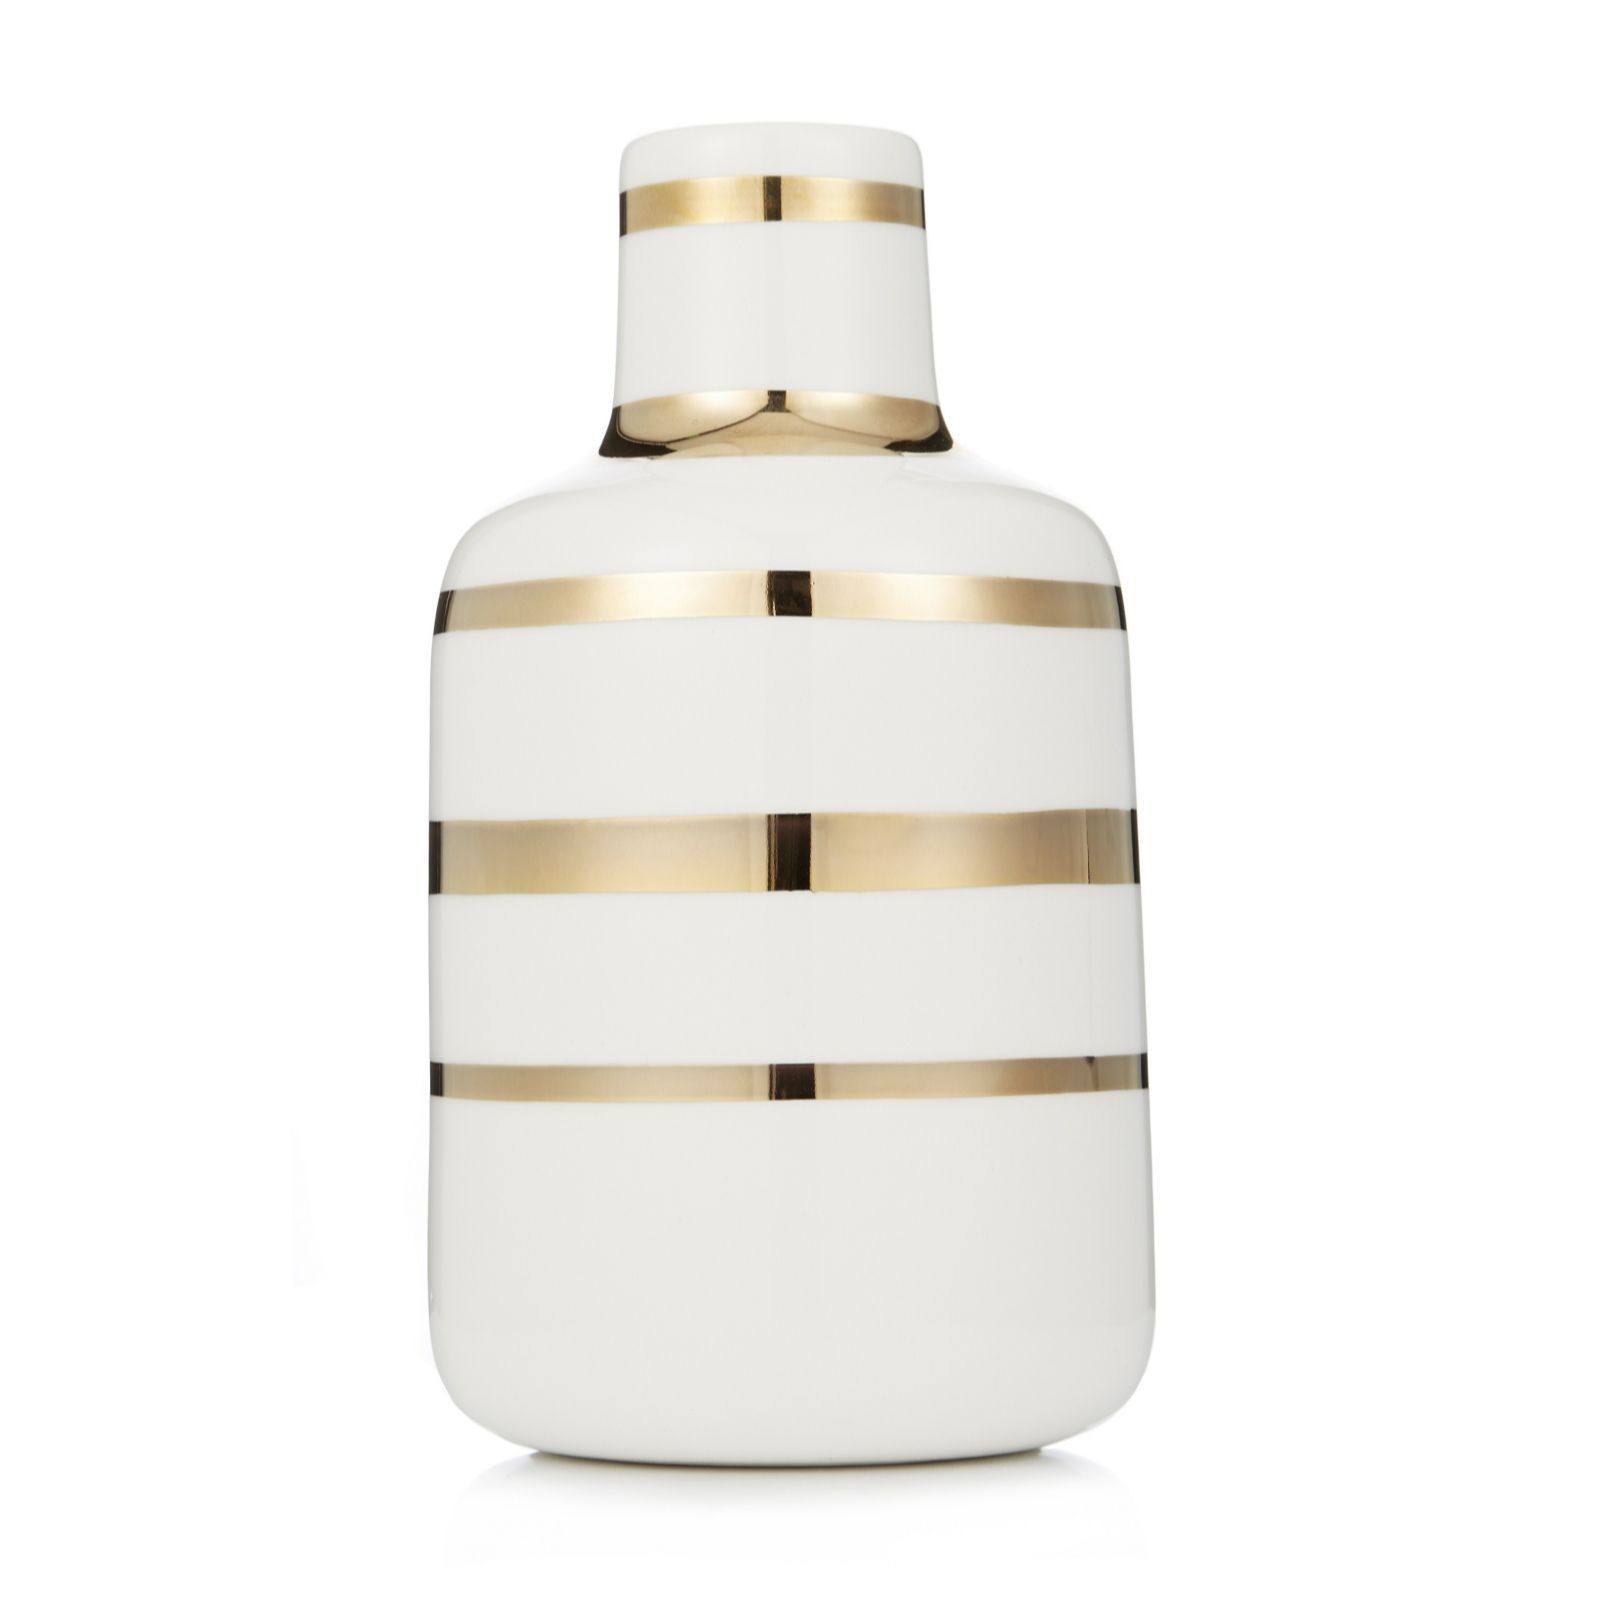 706528 kelly hoppen bottle vase qvc price 2250 pp 595 706528 kelly hoppen bottle vase qvc price 2250 pp 595 select colour gold available on advanced order it will be shipped the week commencing reviewsmspy